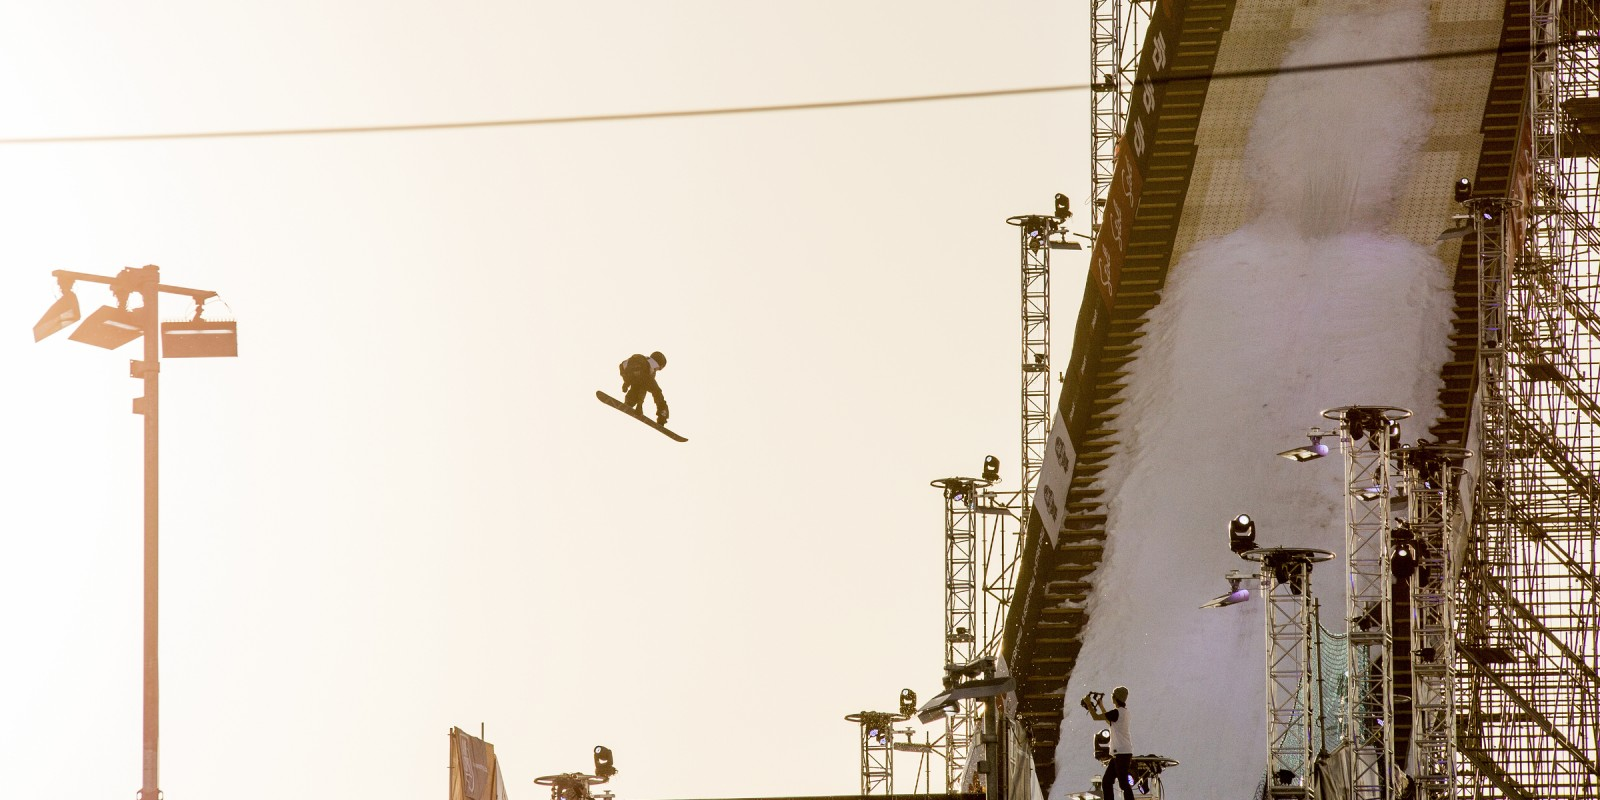 Sven Thorgren competes in the 2016 Air & Style comp.